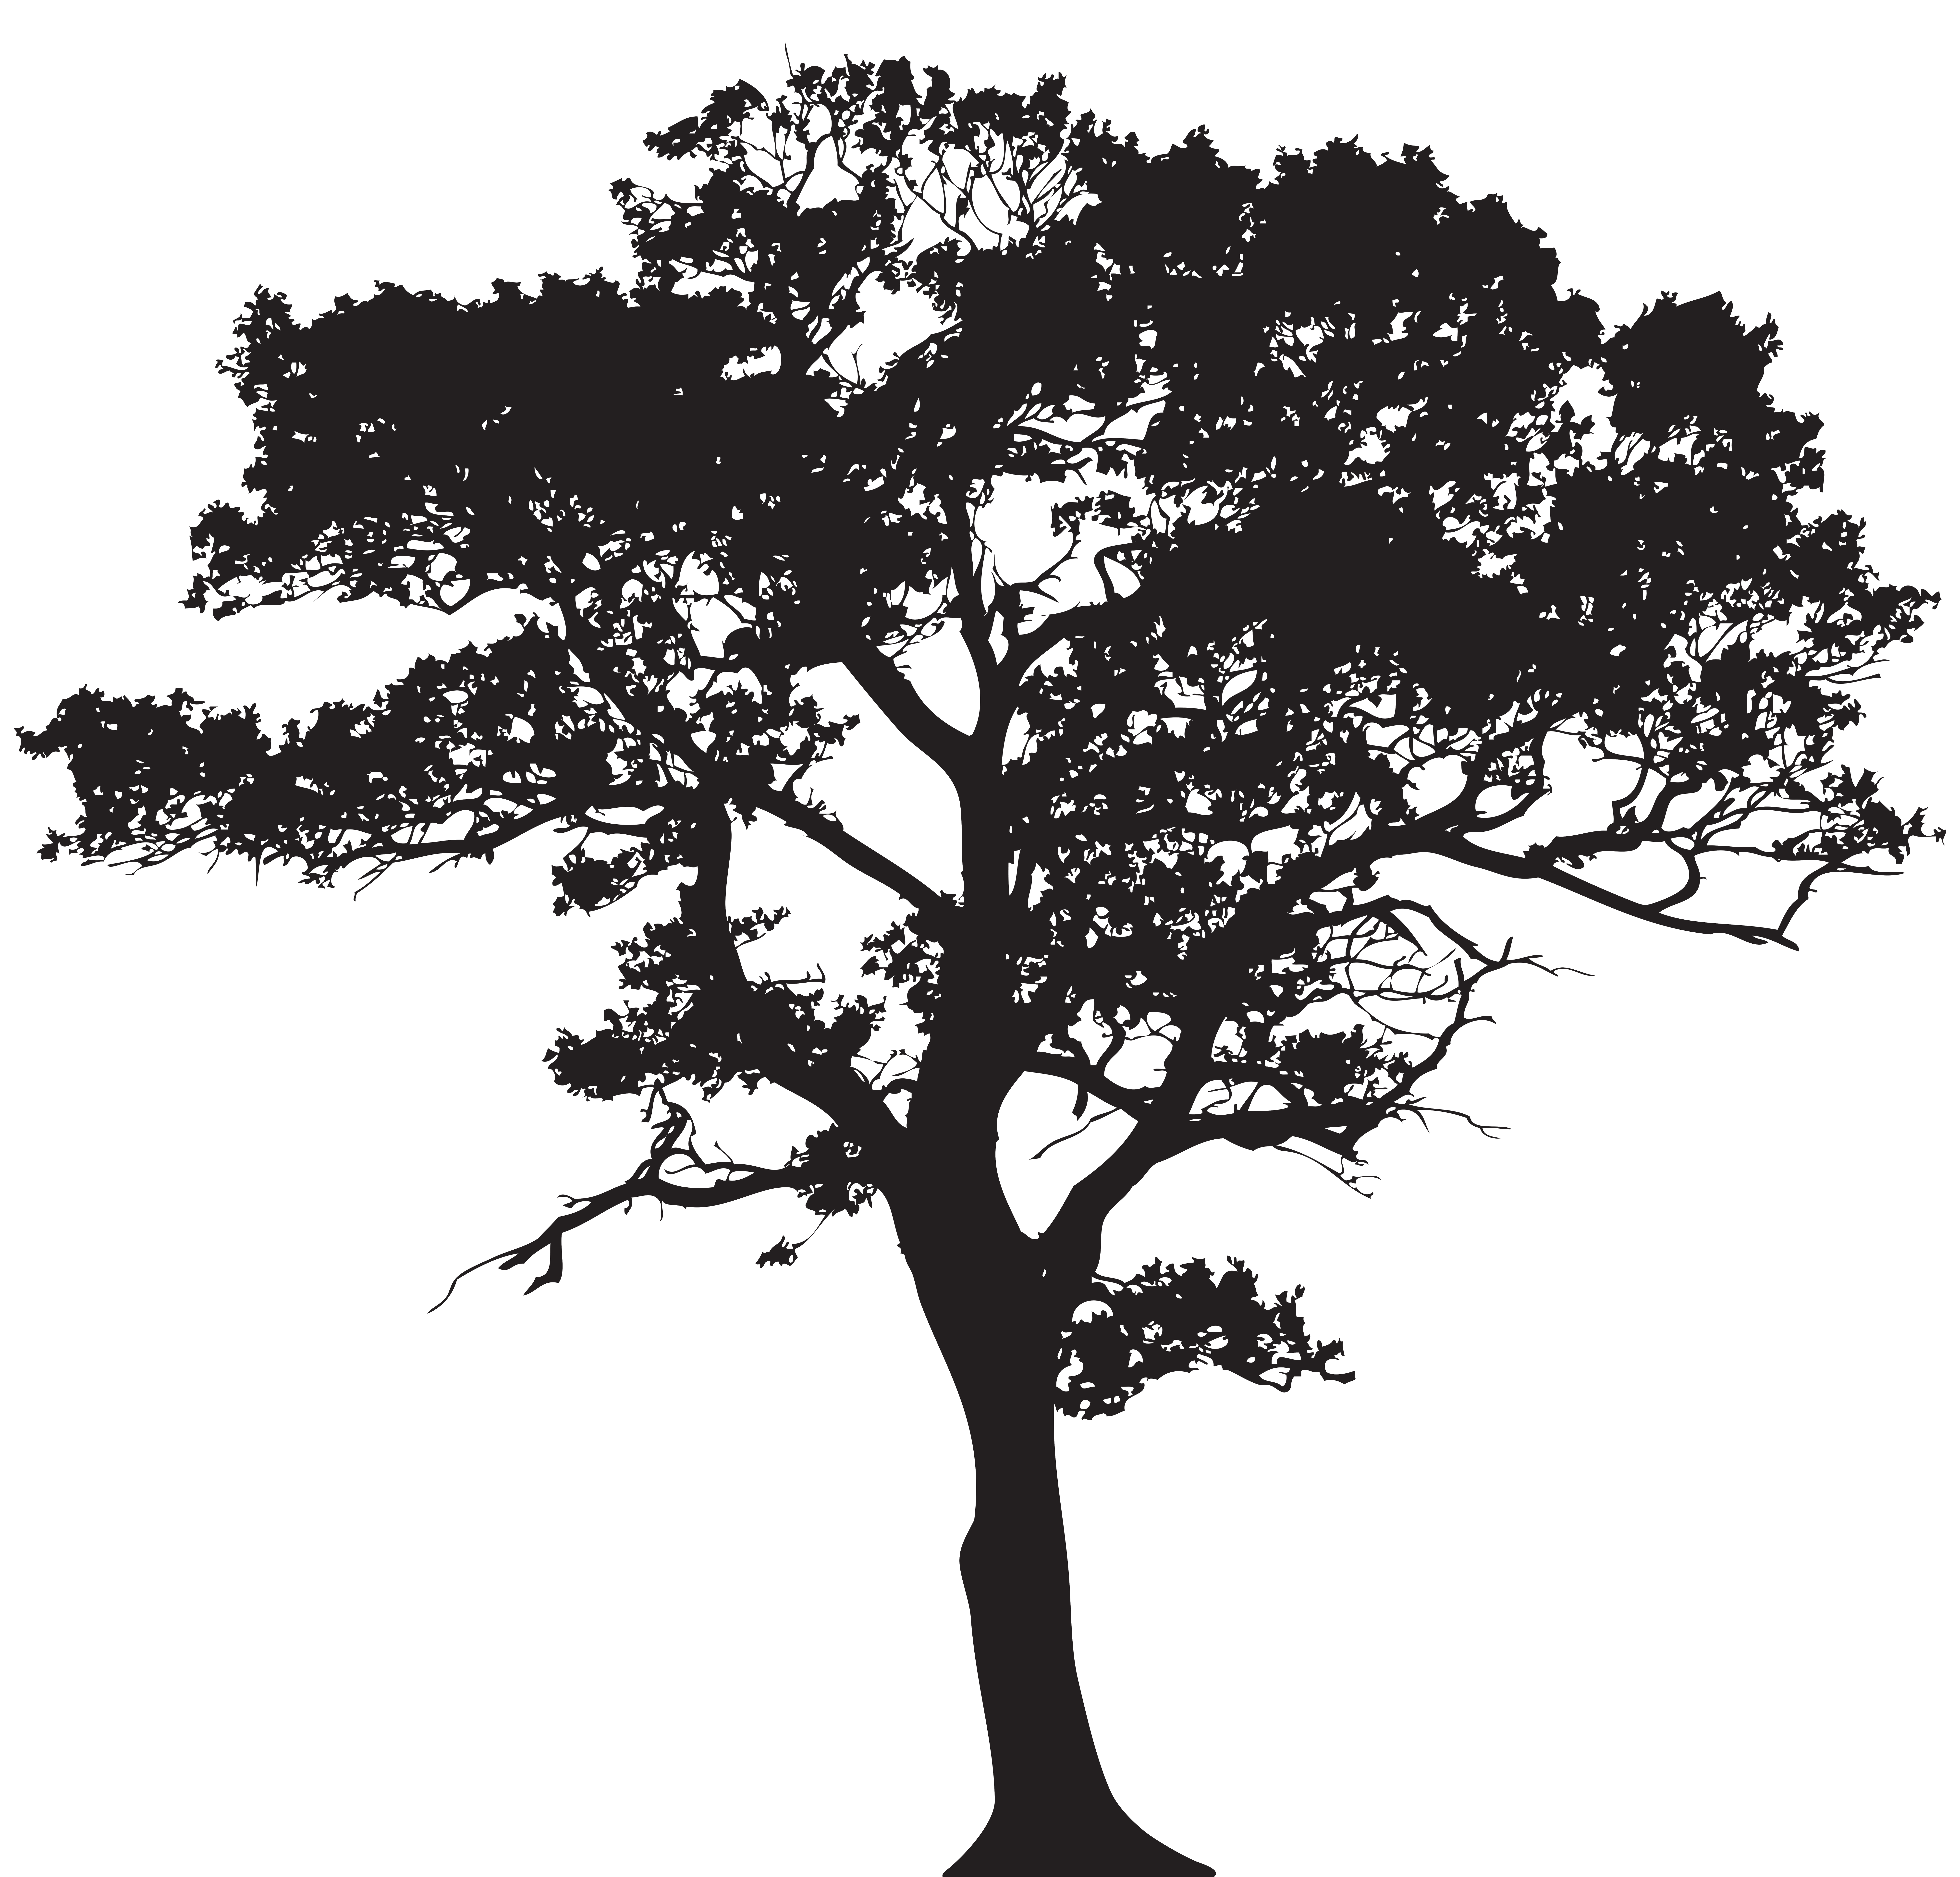 Black trees png. Silhouette tree clip art